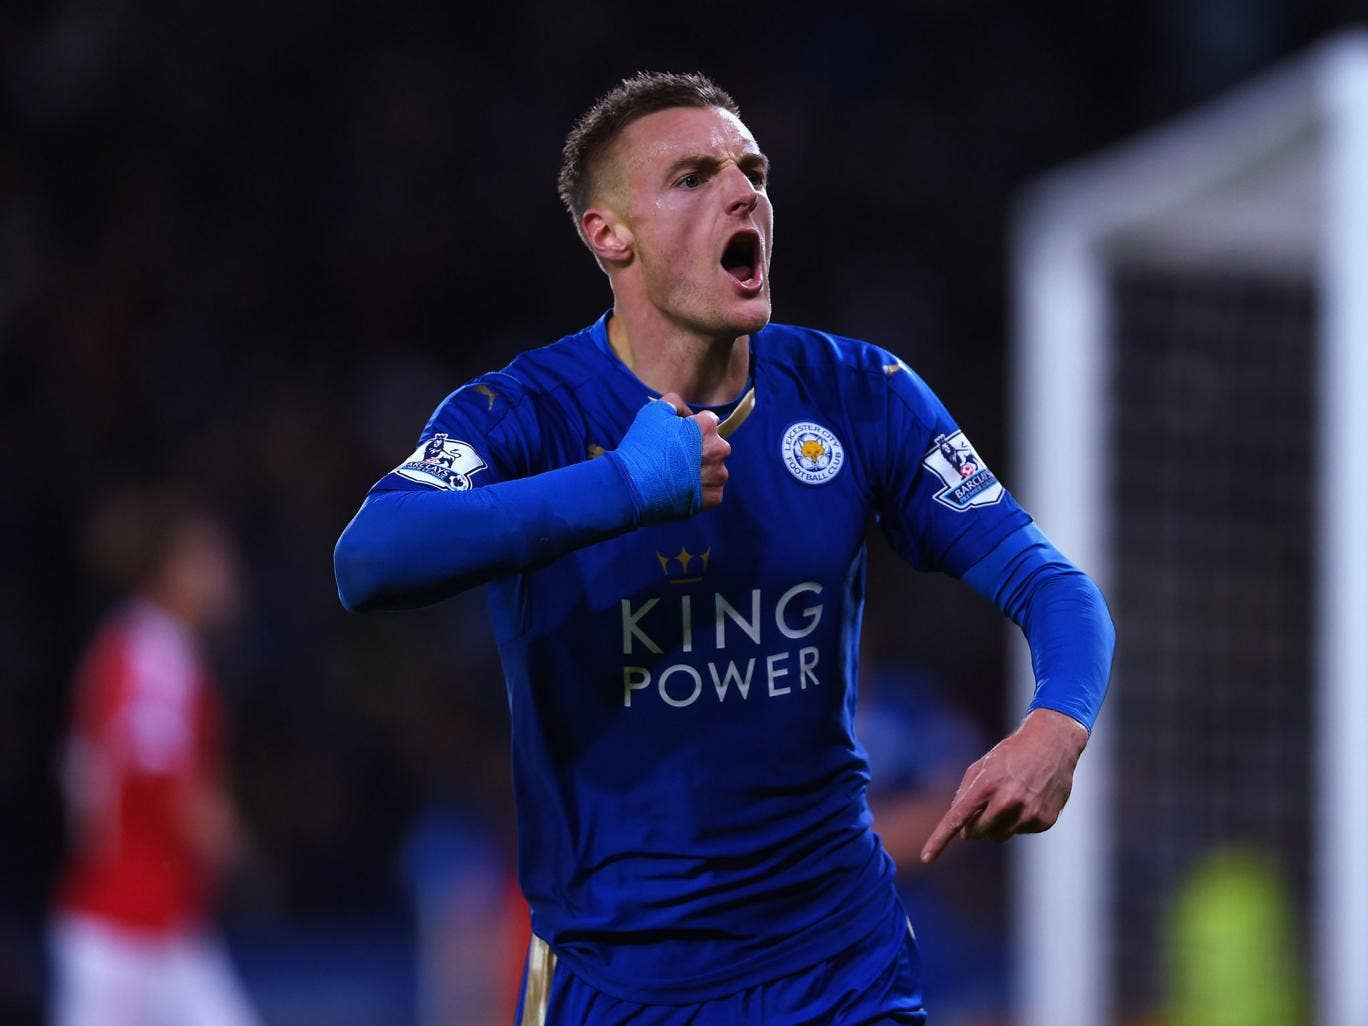 Jamie Vardy To Manchester United: Robbie Savage Urges Louis Van Gaal To Move For Leicester